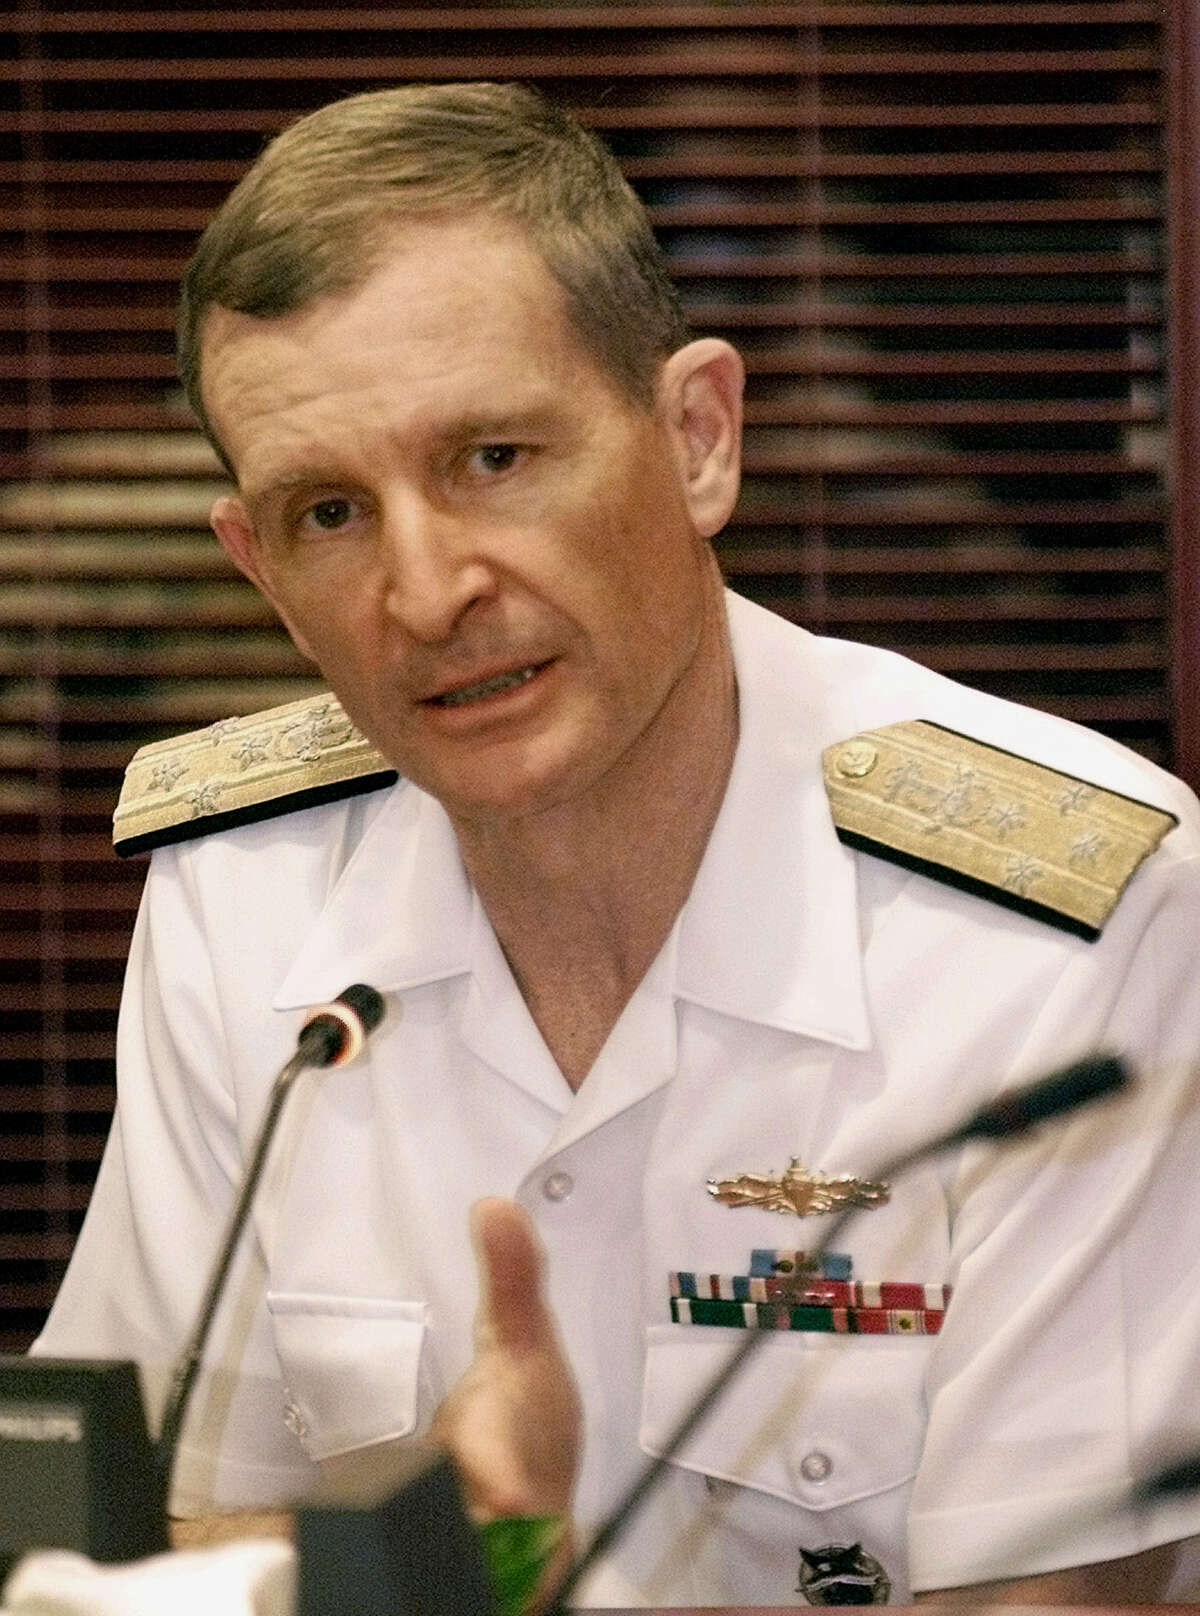 **FILE** This Nov. 27, 2001 file photo shows retired admiral and former commander of the U.S. Pacific Command Dennis Blair speaking during a news conference in Jakarta, Indonesia. President-elect Barack Obama's decision to fill the nation's top intelligence jobs with two men short on direct experience in intelligence gathering surprised the spy community and signaled the Democrat's intention for a clean break from Bush administration policies. (AP Photo/Dita Alangkara, file)